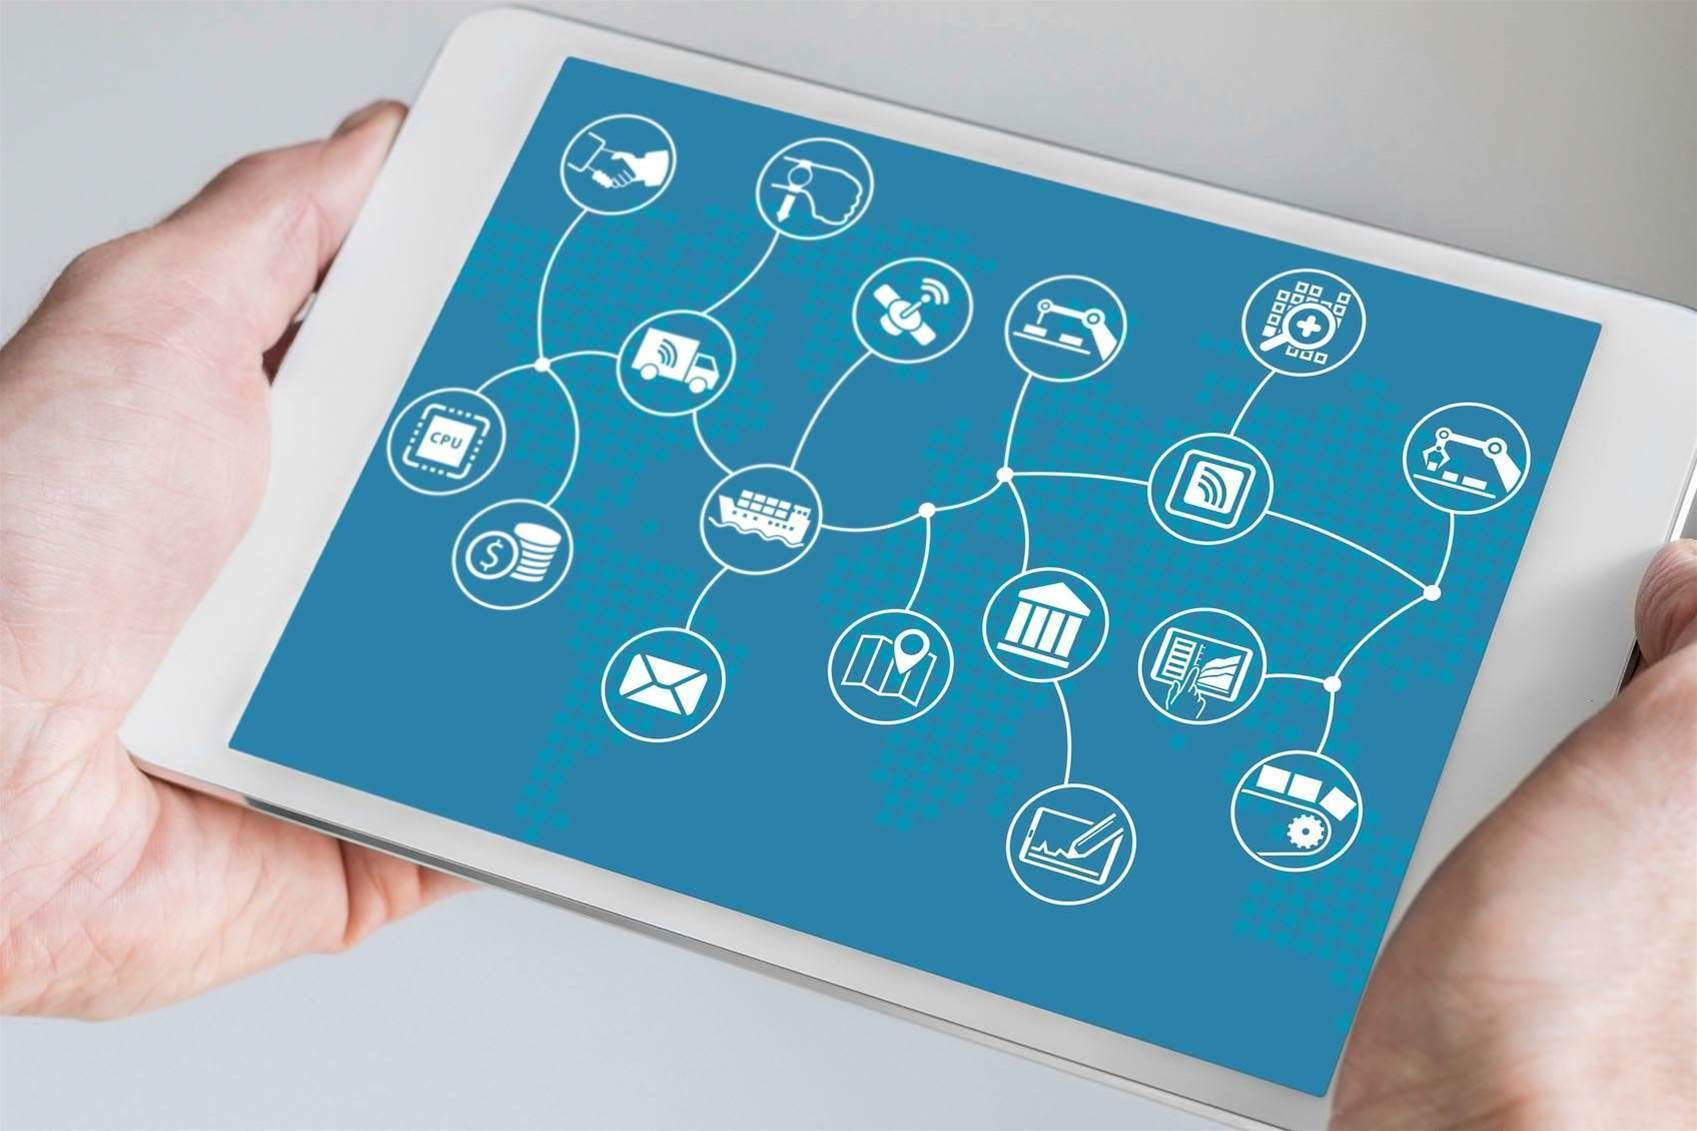 Cisco plans to take IoT 'to a new level'